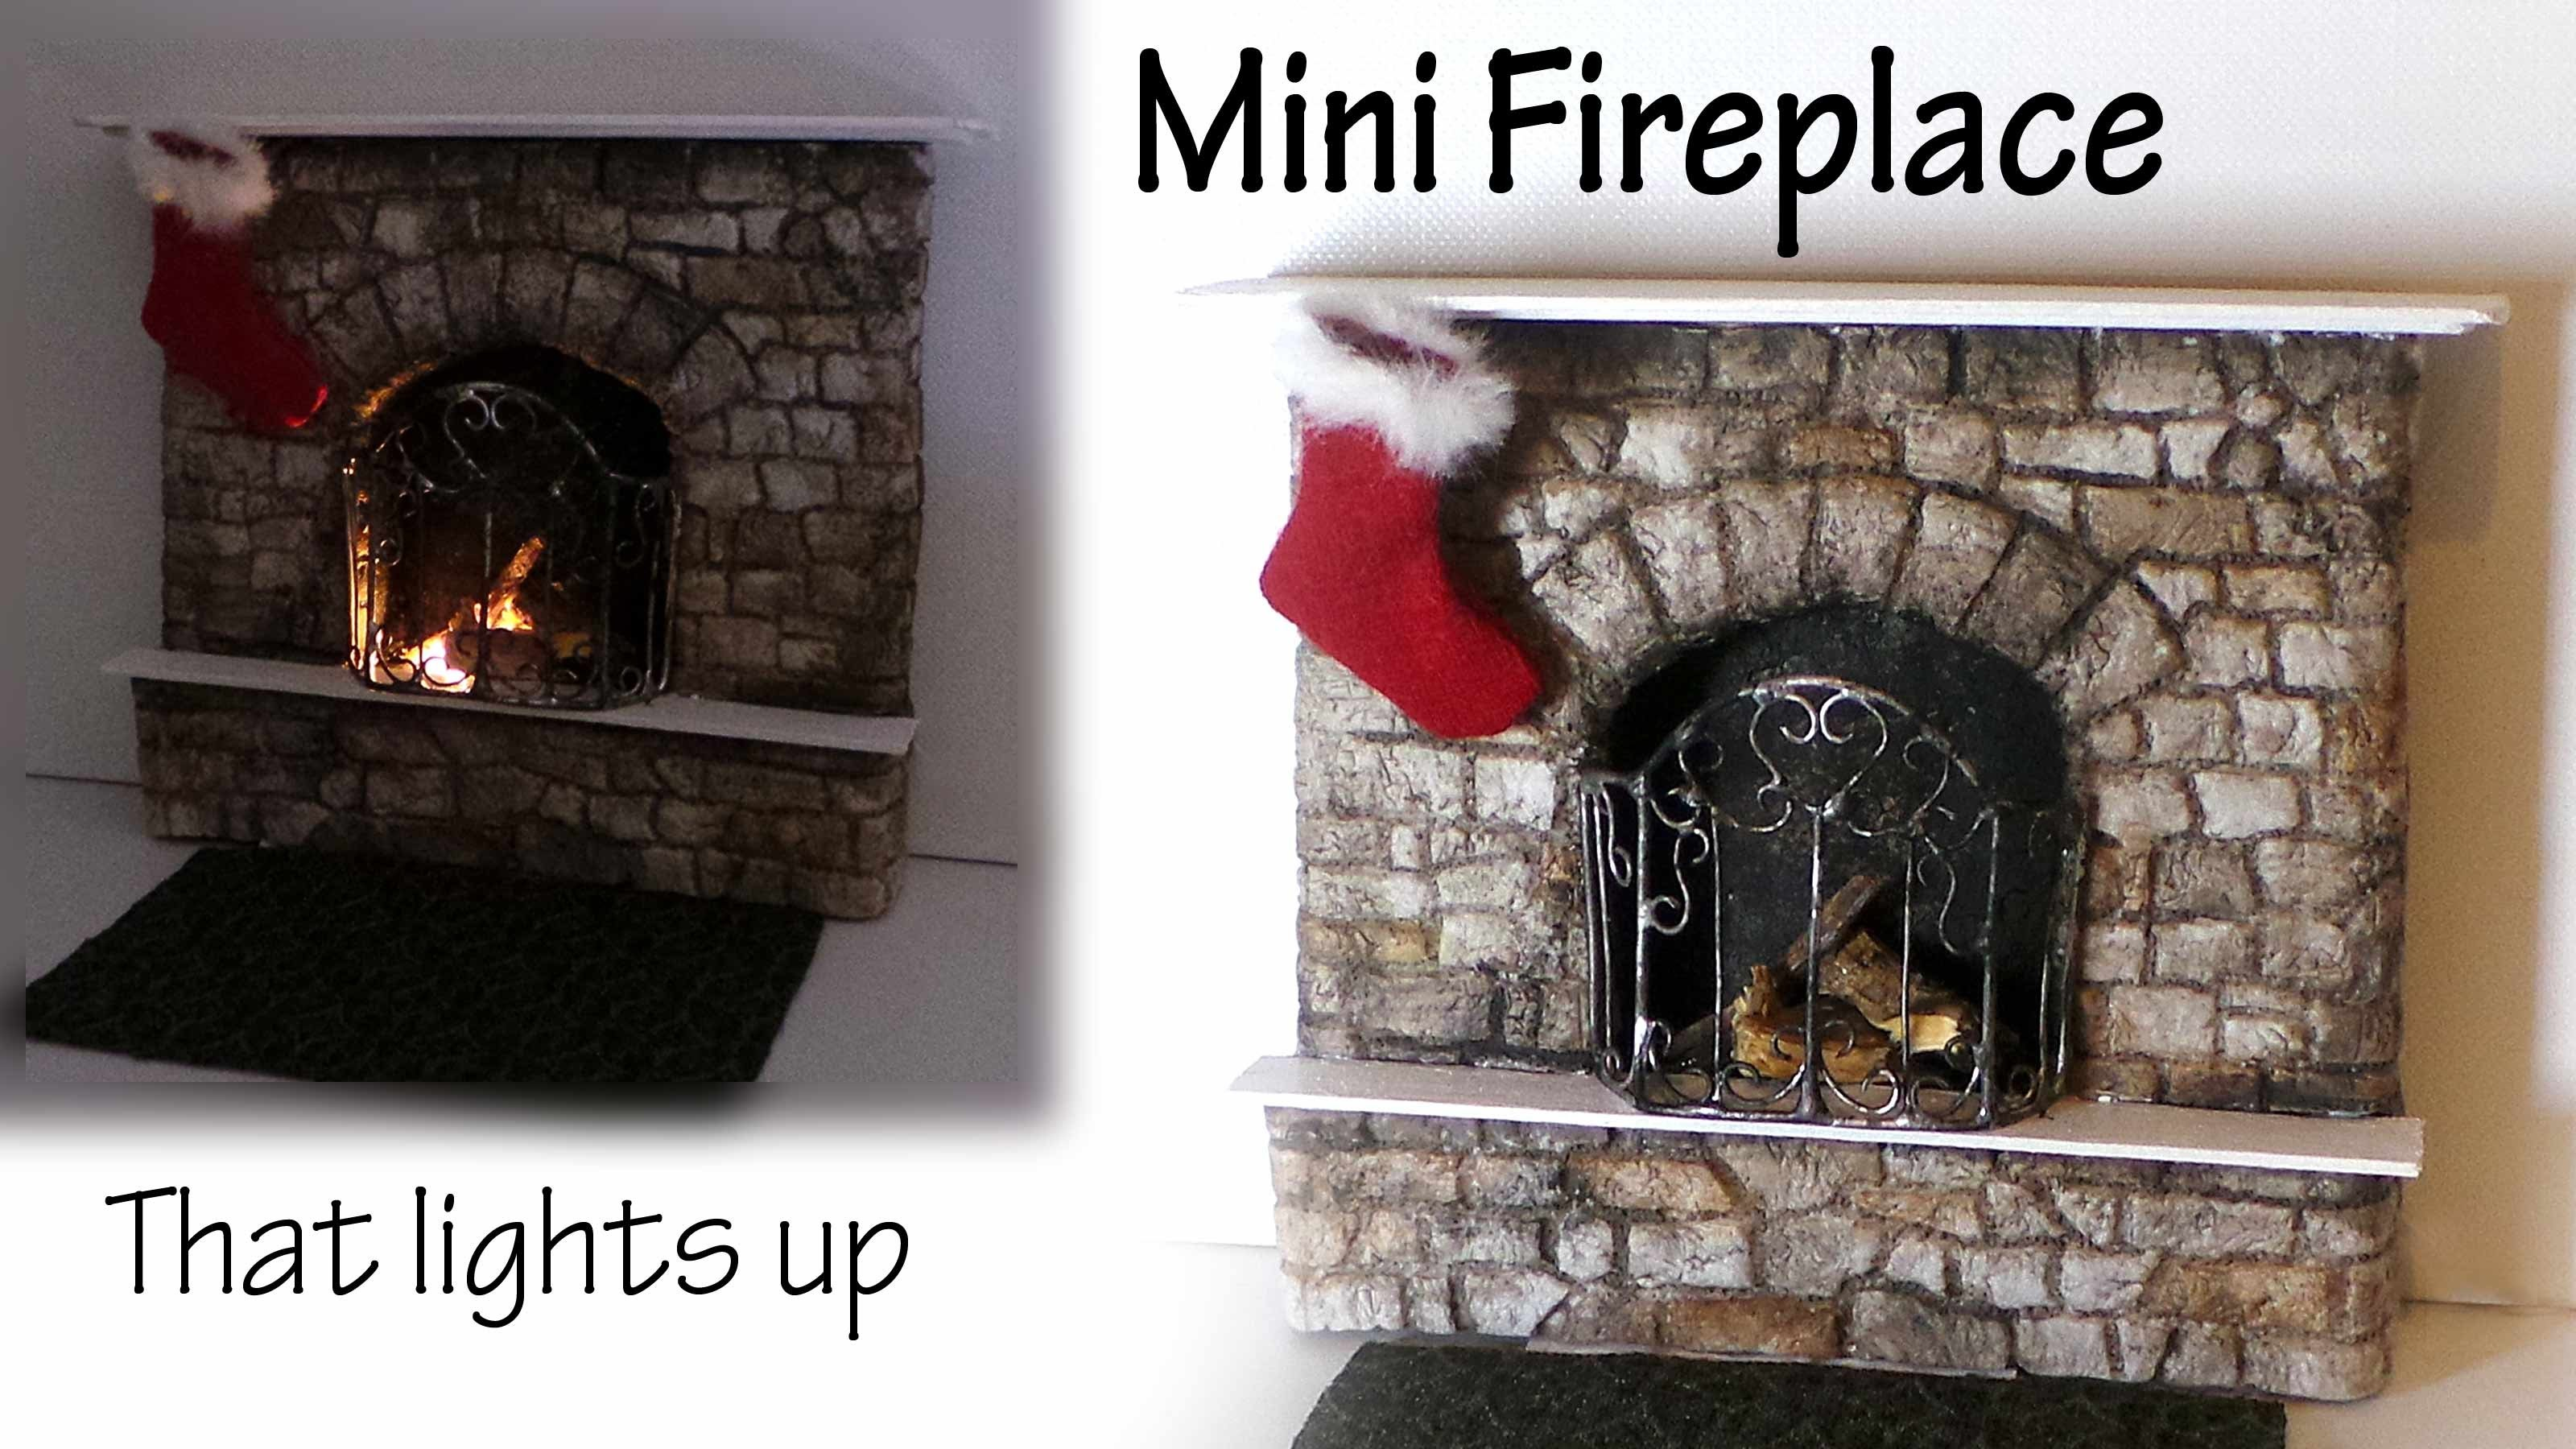 Miniature Fireplace Tutorial - Polymer Clay & Mixed Media